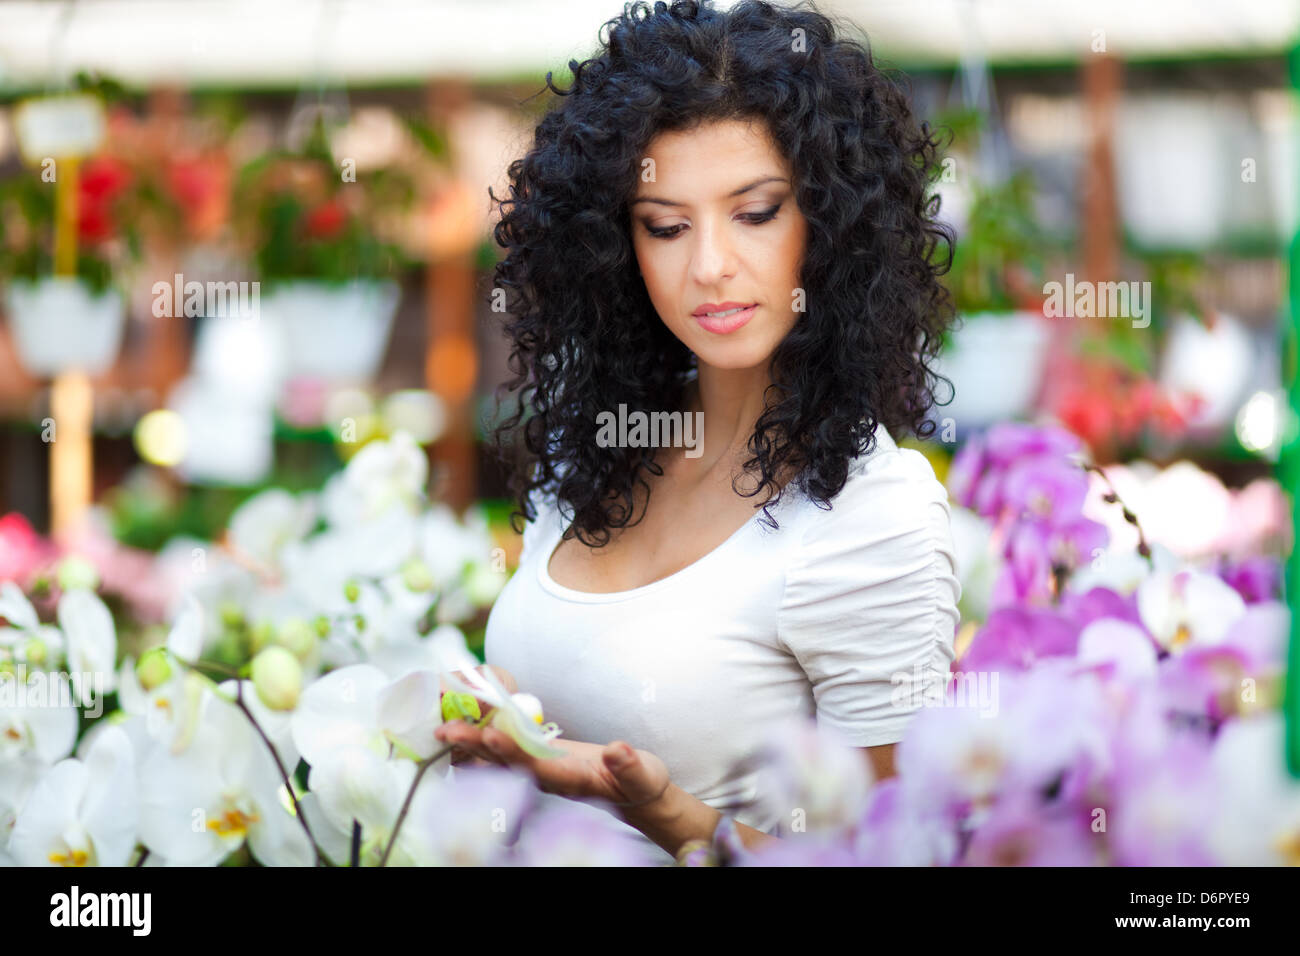 Portrait of a woman shopping in a greenhouse - Stock Image